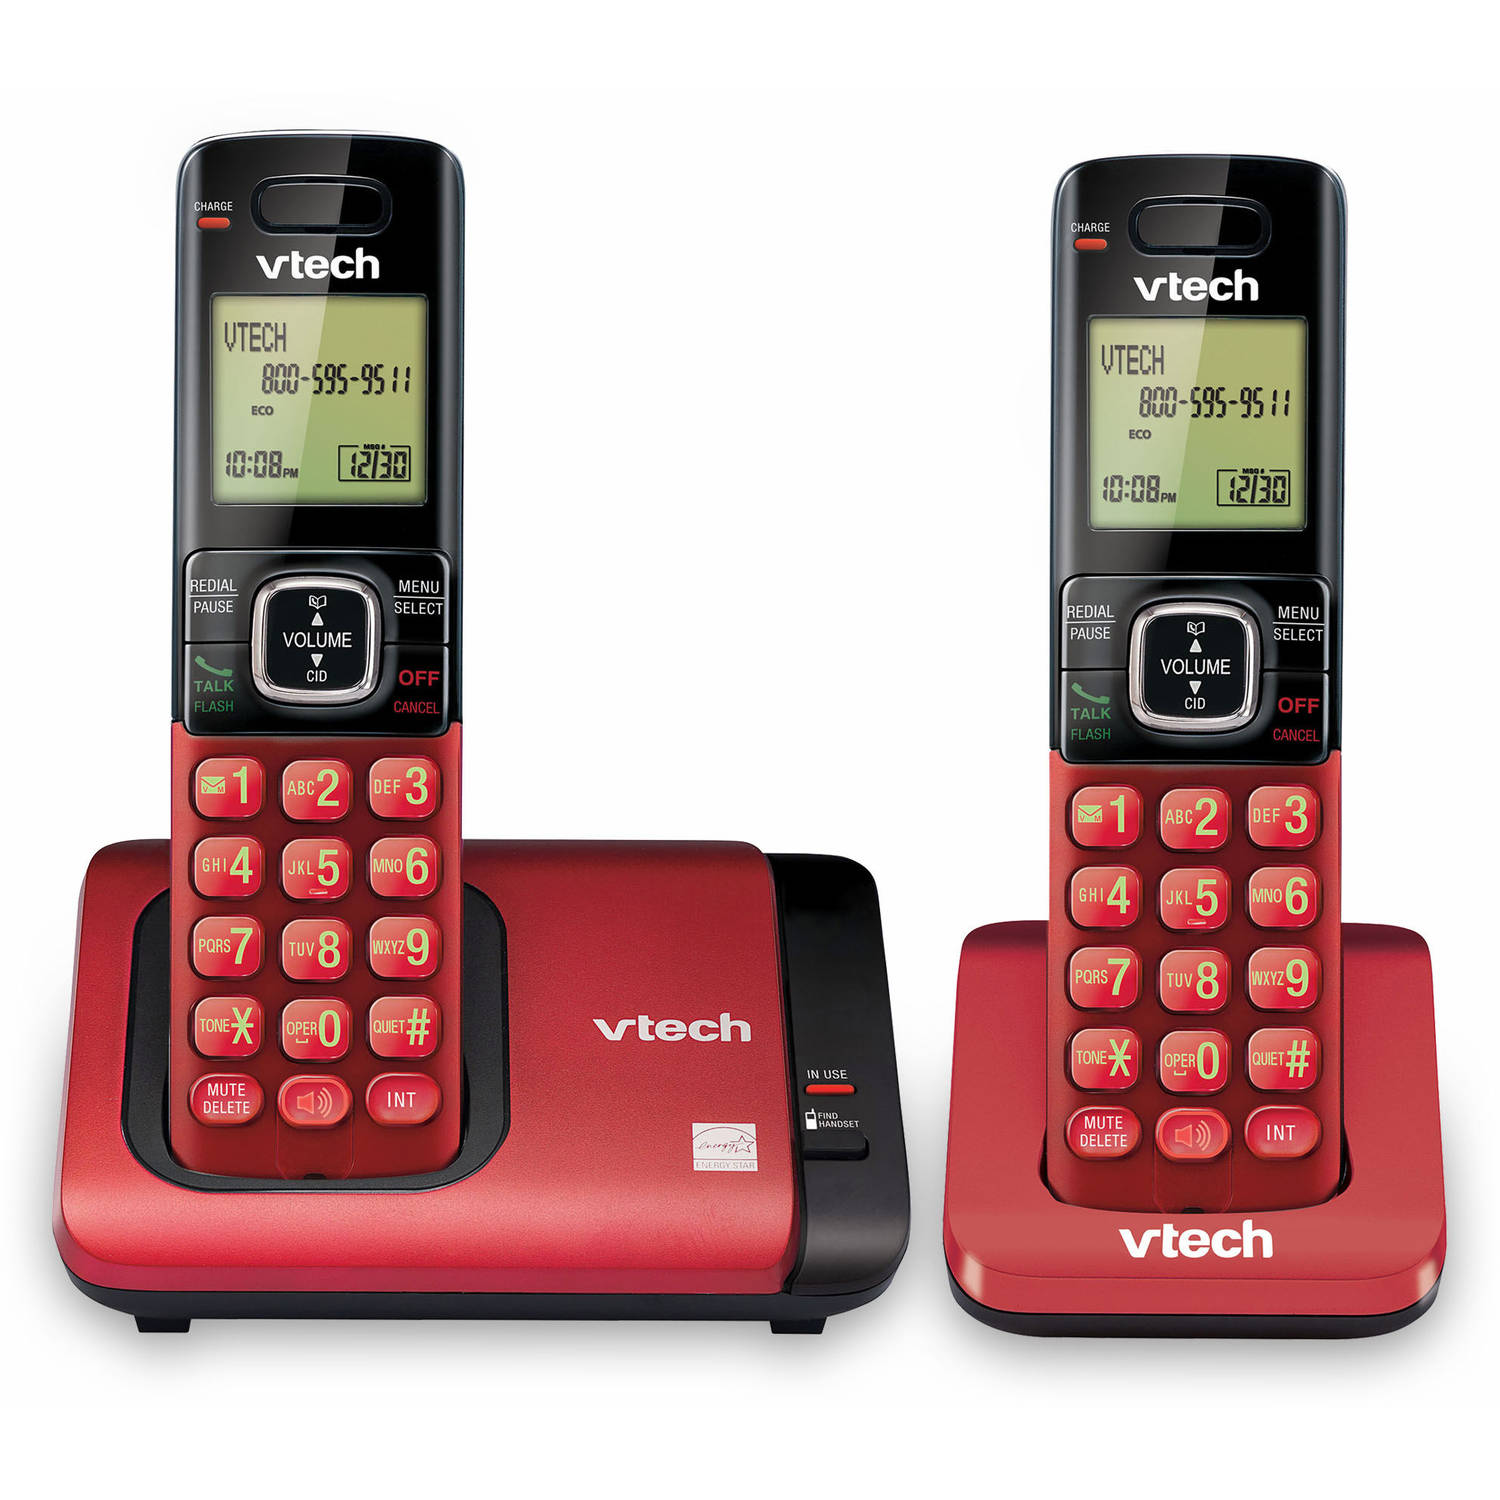 VTech CS6719-26 DECT 6.0 Handset Cordless Phone System with Caller ID/Call Waiting and 2 Handsets, Red/Black